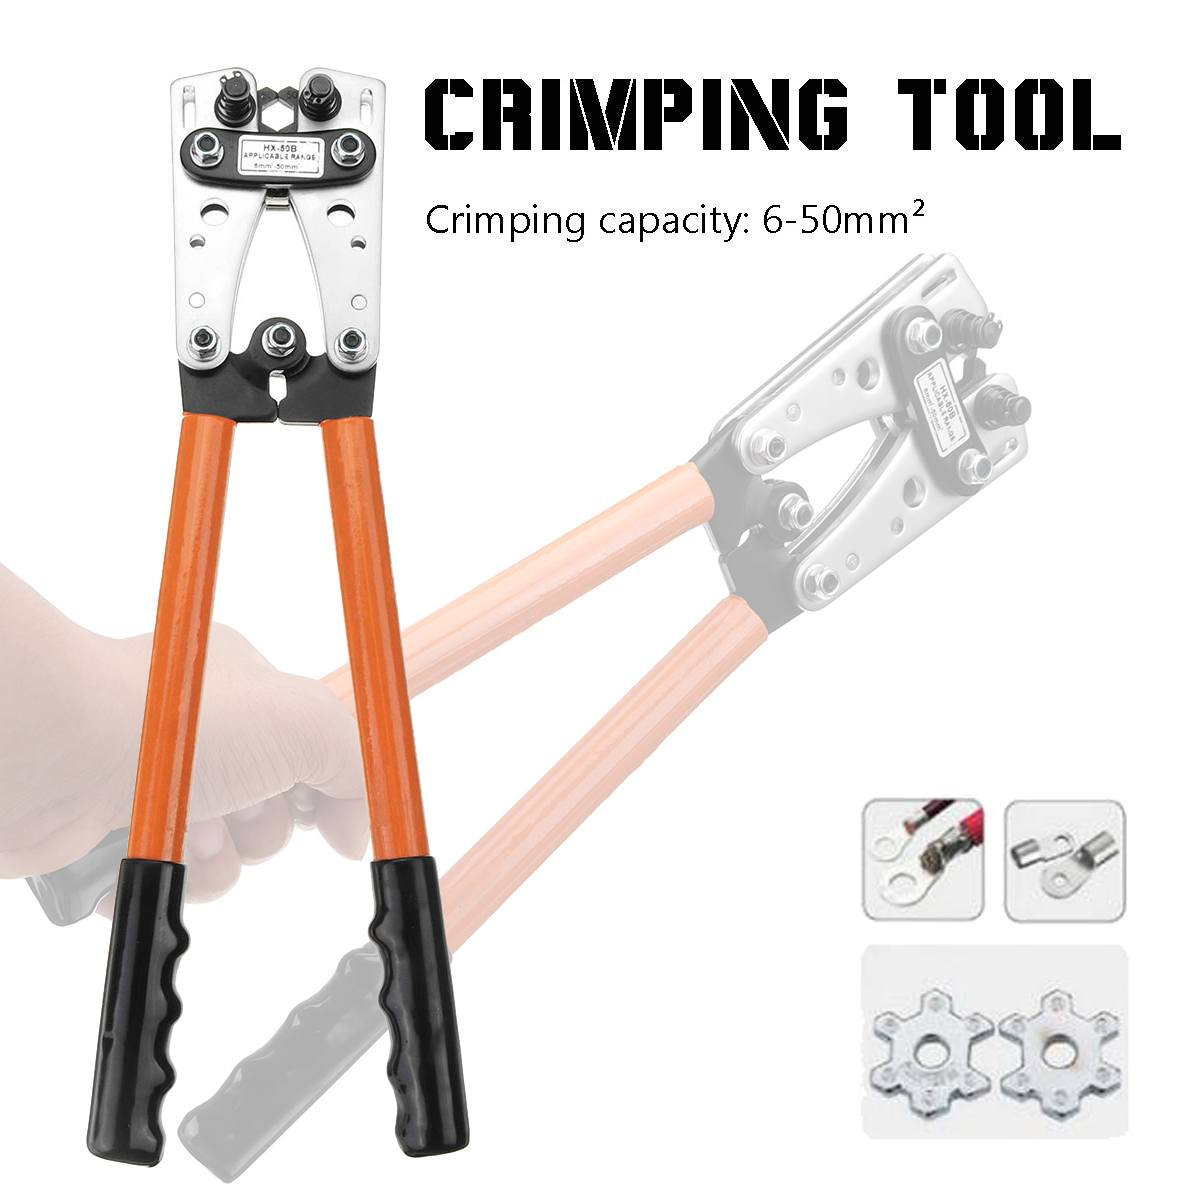 6-50mm 2 Crimp Tube Terminal Crimper Tool Battery Cable Lugs Pliers Hex Crimping Tool Cable Terminal Plier Hand Tools HX-50B